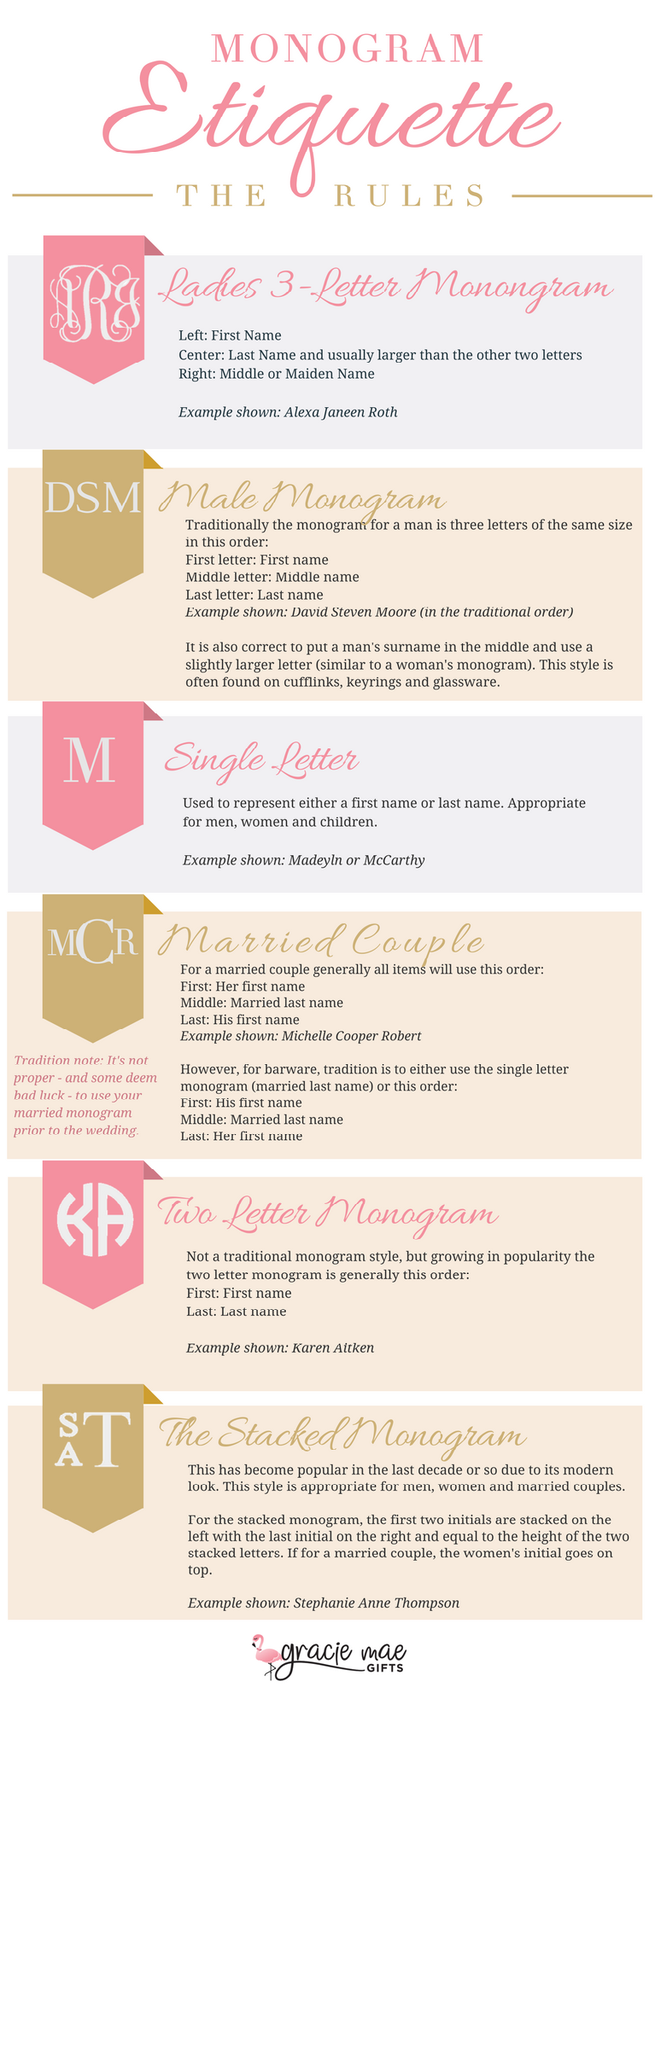 monogram etiquette, monogramming rules, gracie mae gifts